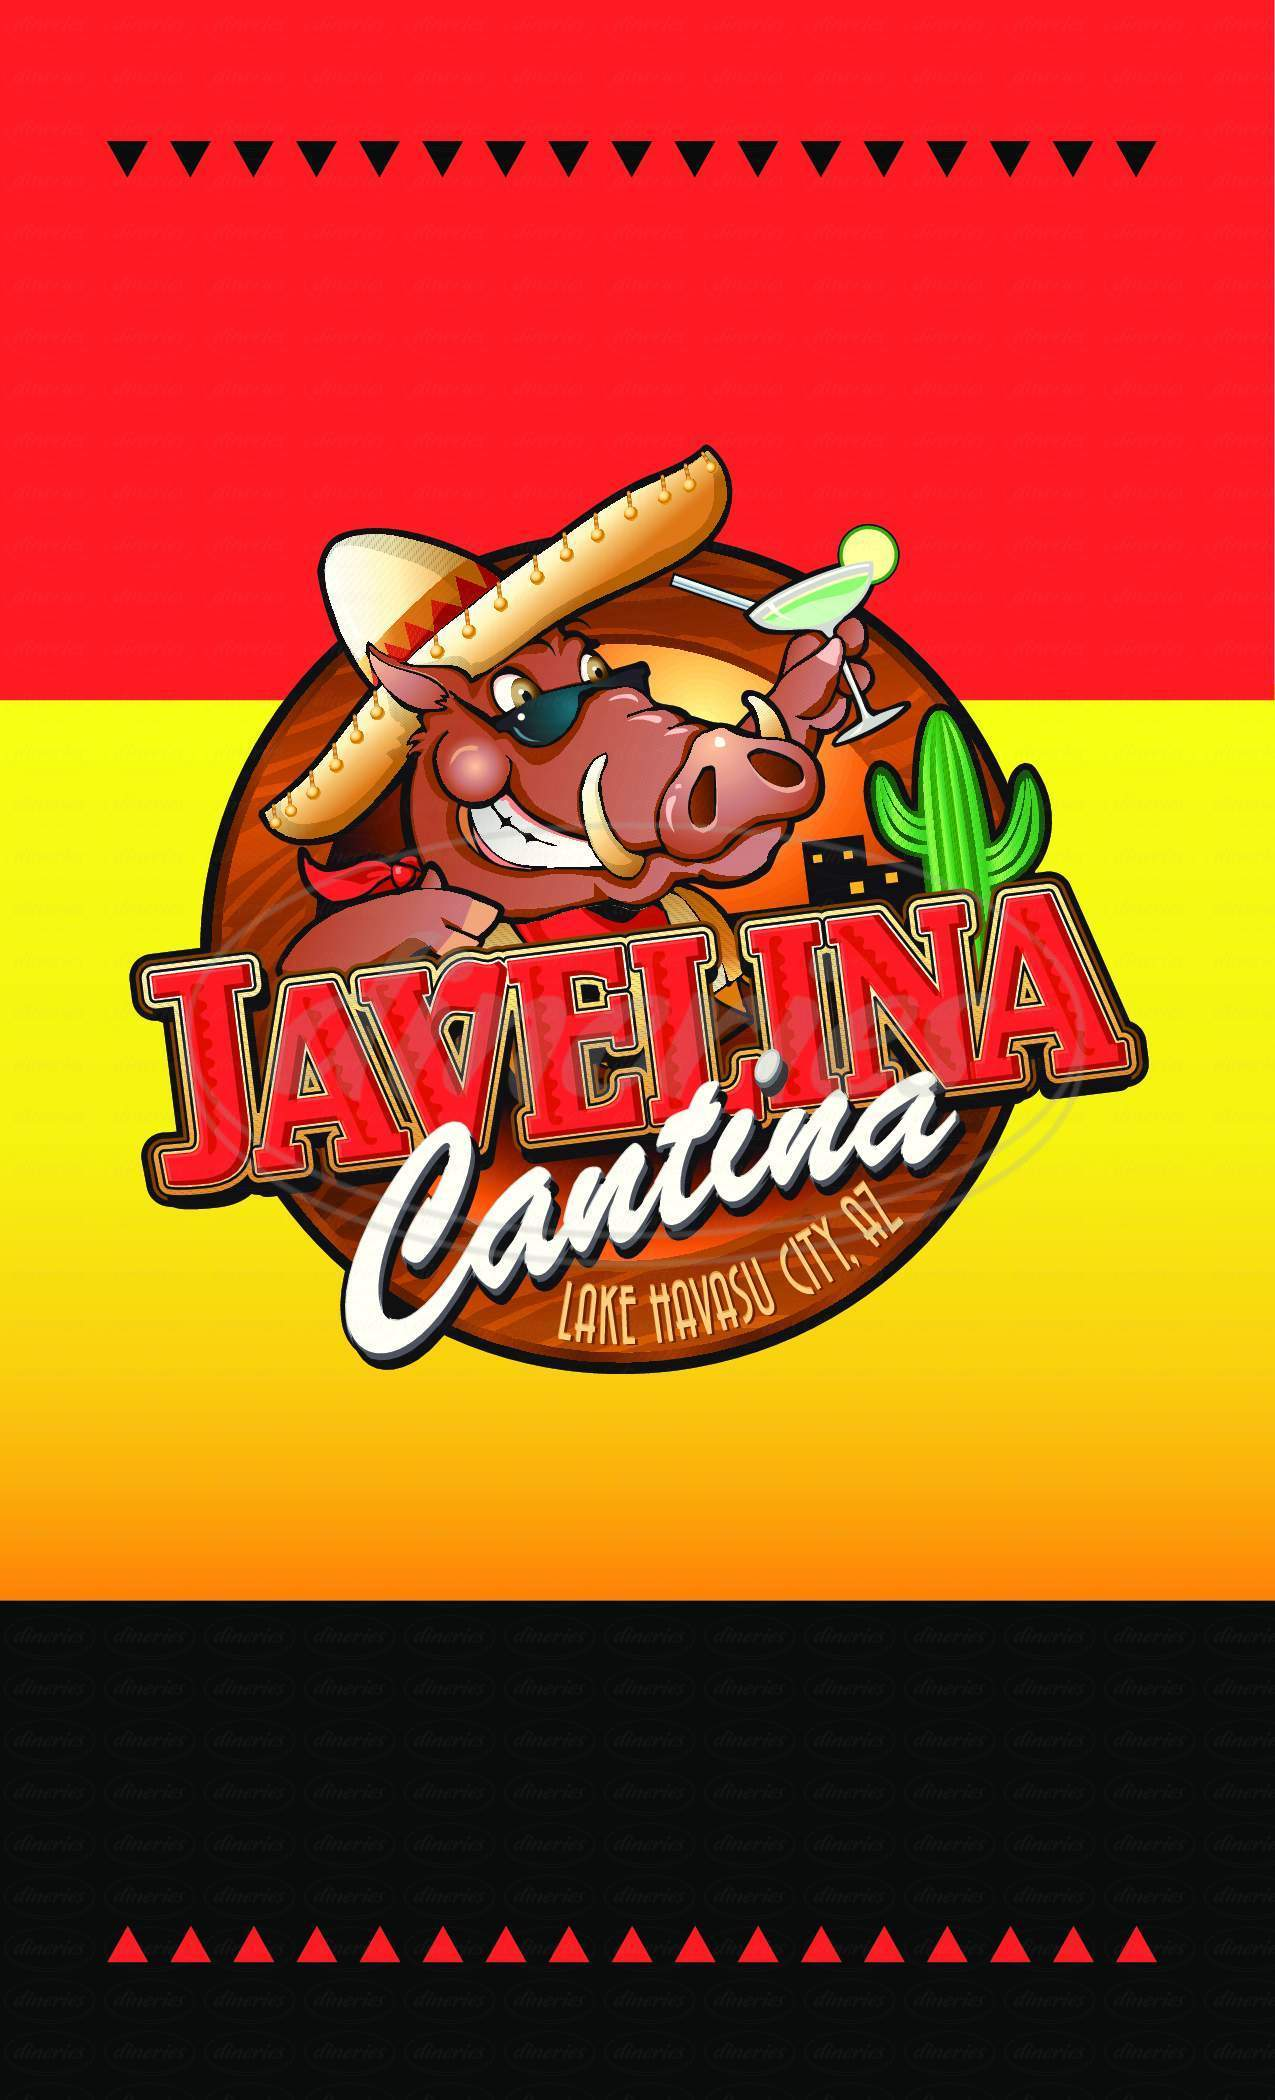 menu for Javalina Cantina